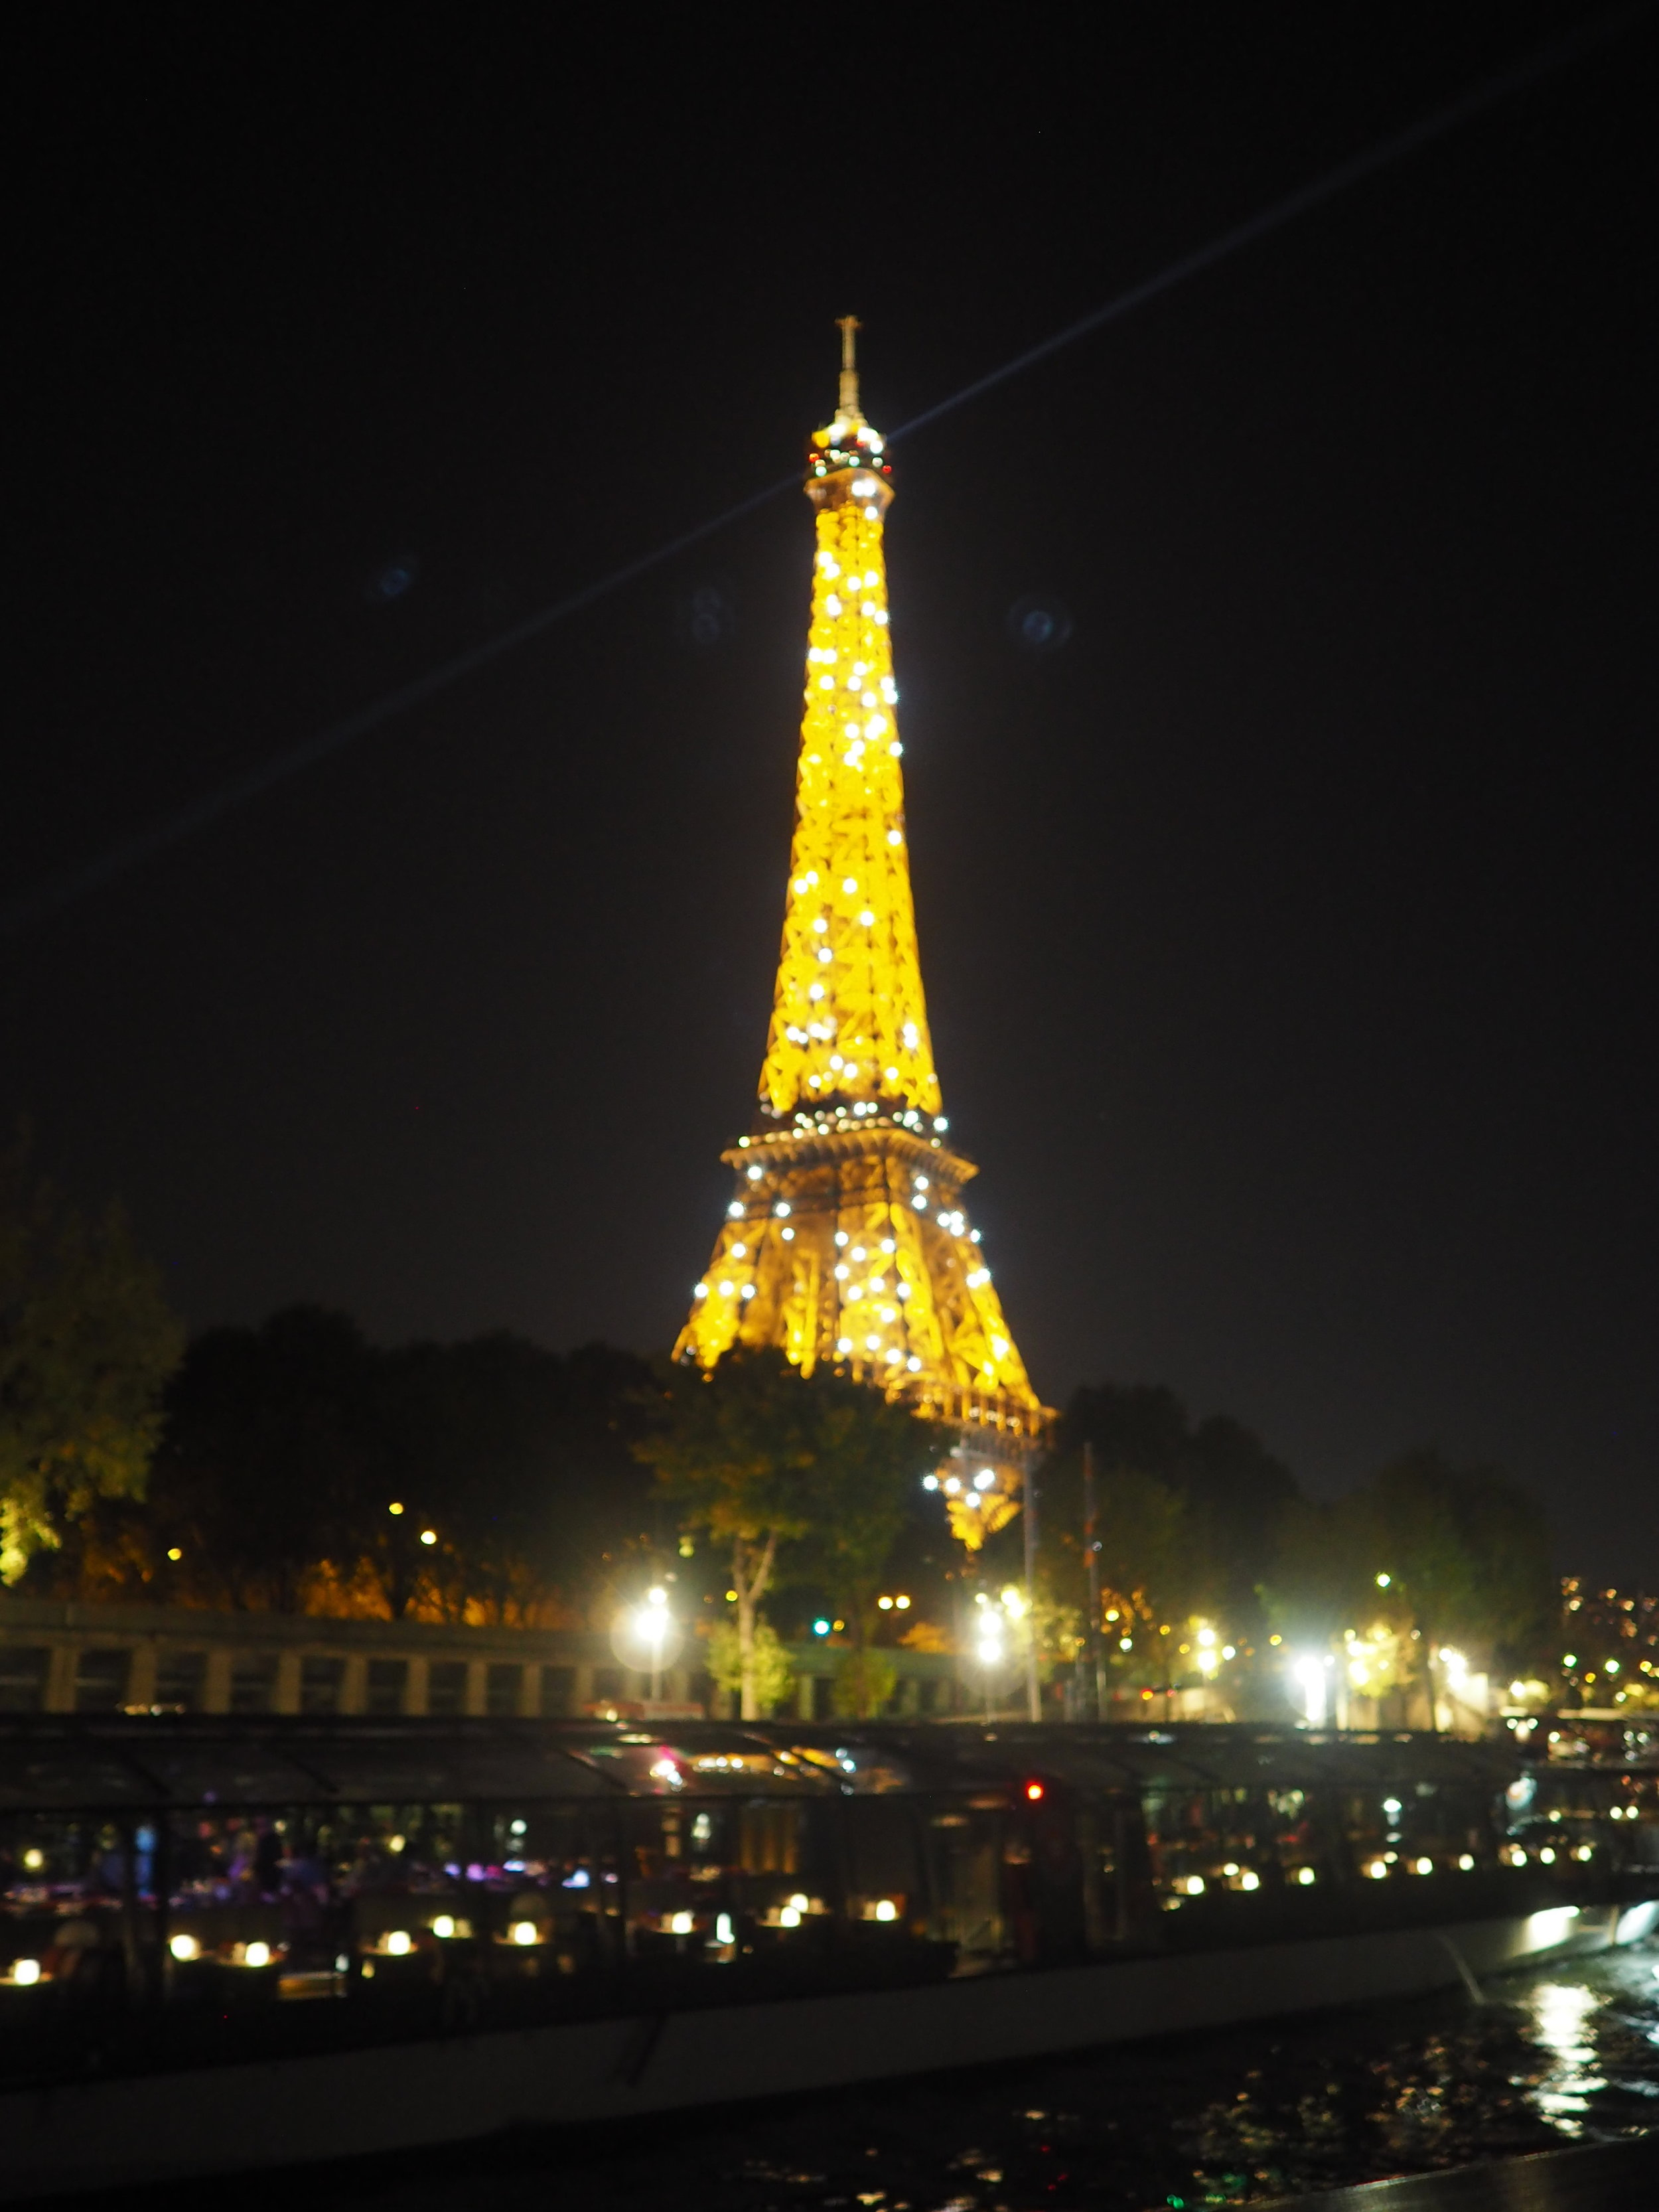 so hard to capture the magic of a twinkling Eiffel tower! honestly it was mesmerizing!